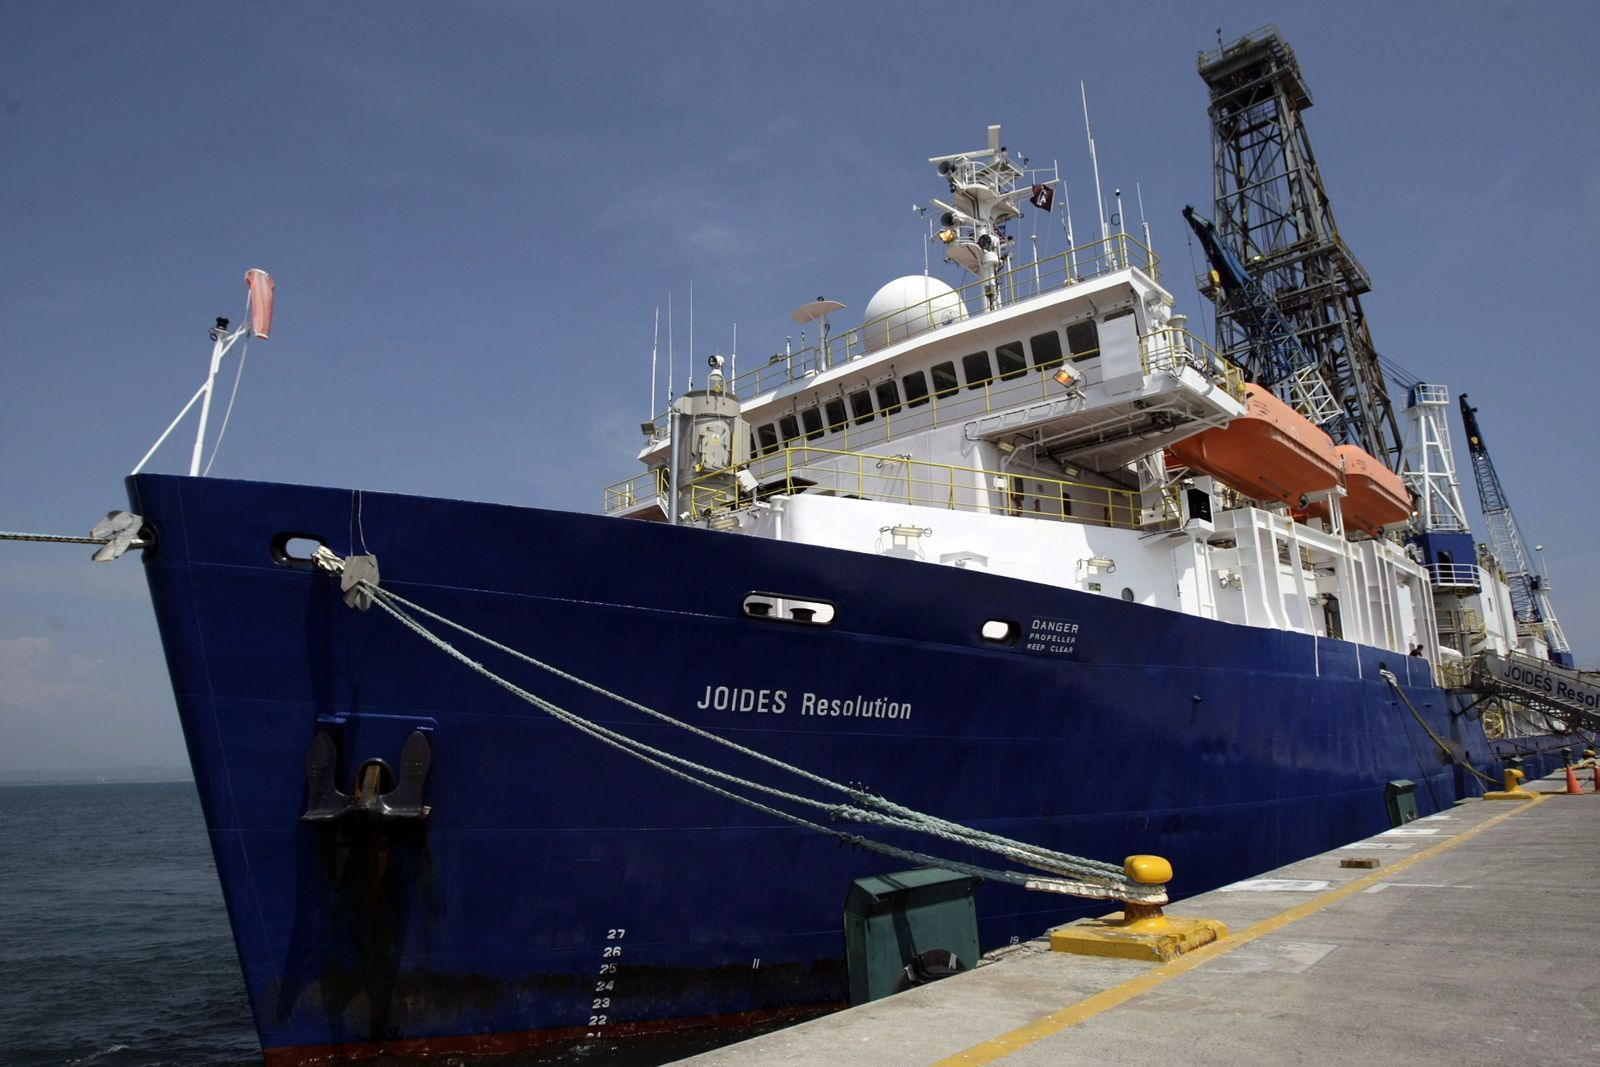 Investigation of Costa Rica's deepest ocean